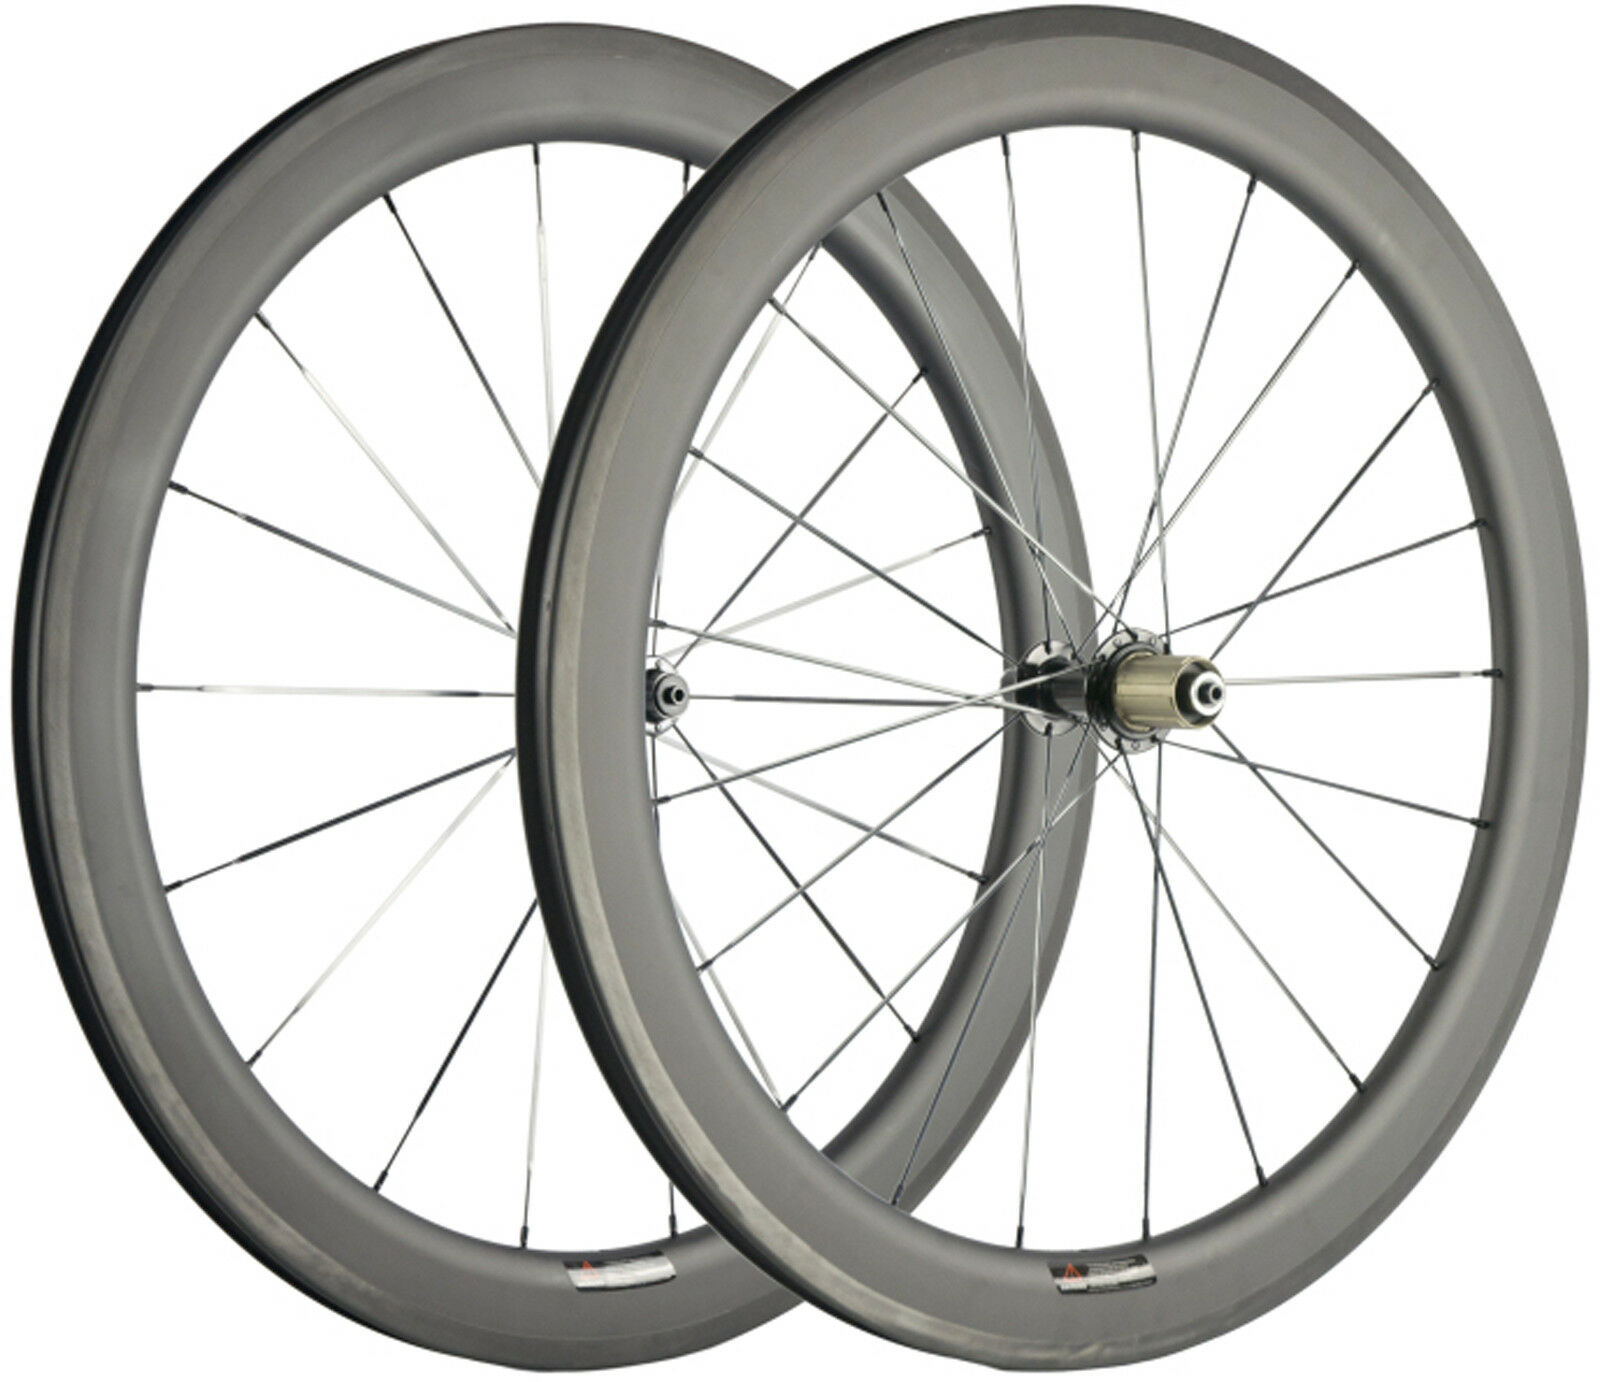 Carbon Wheels Road Bike Clincher 45mm Depth  Carbon Wheelset Shimnao Campagnolo  welcome to order